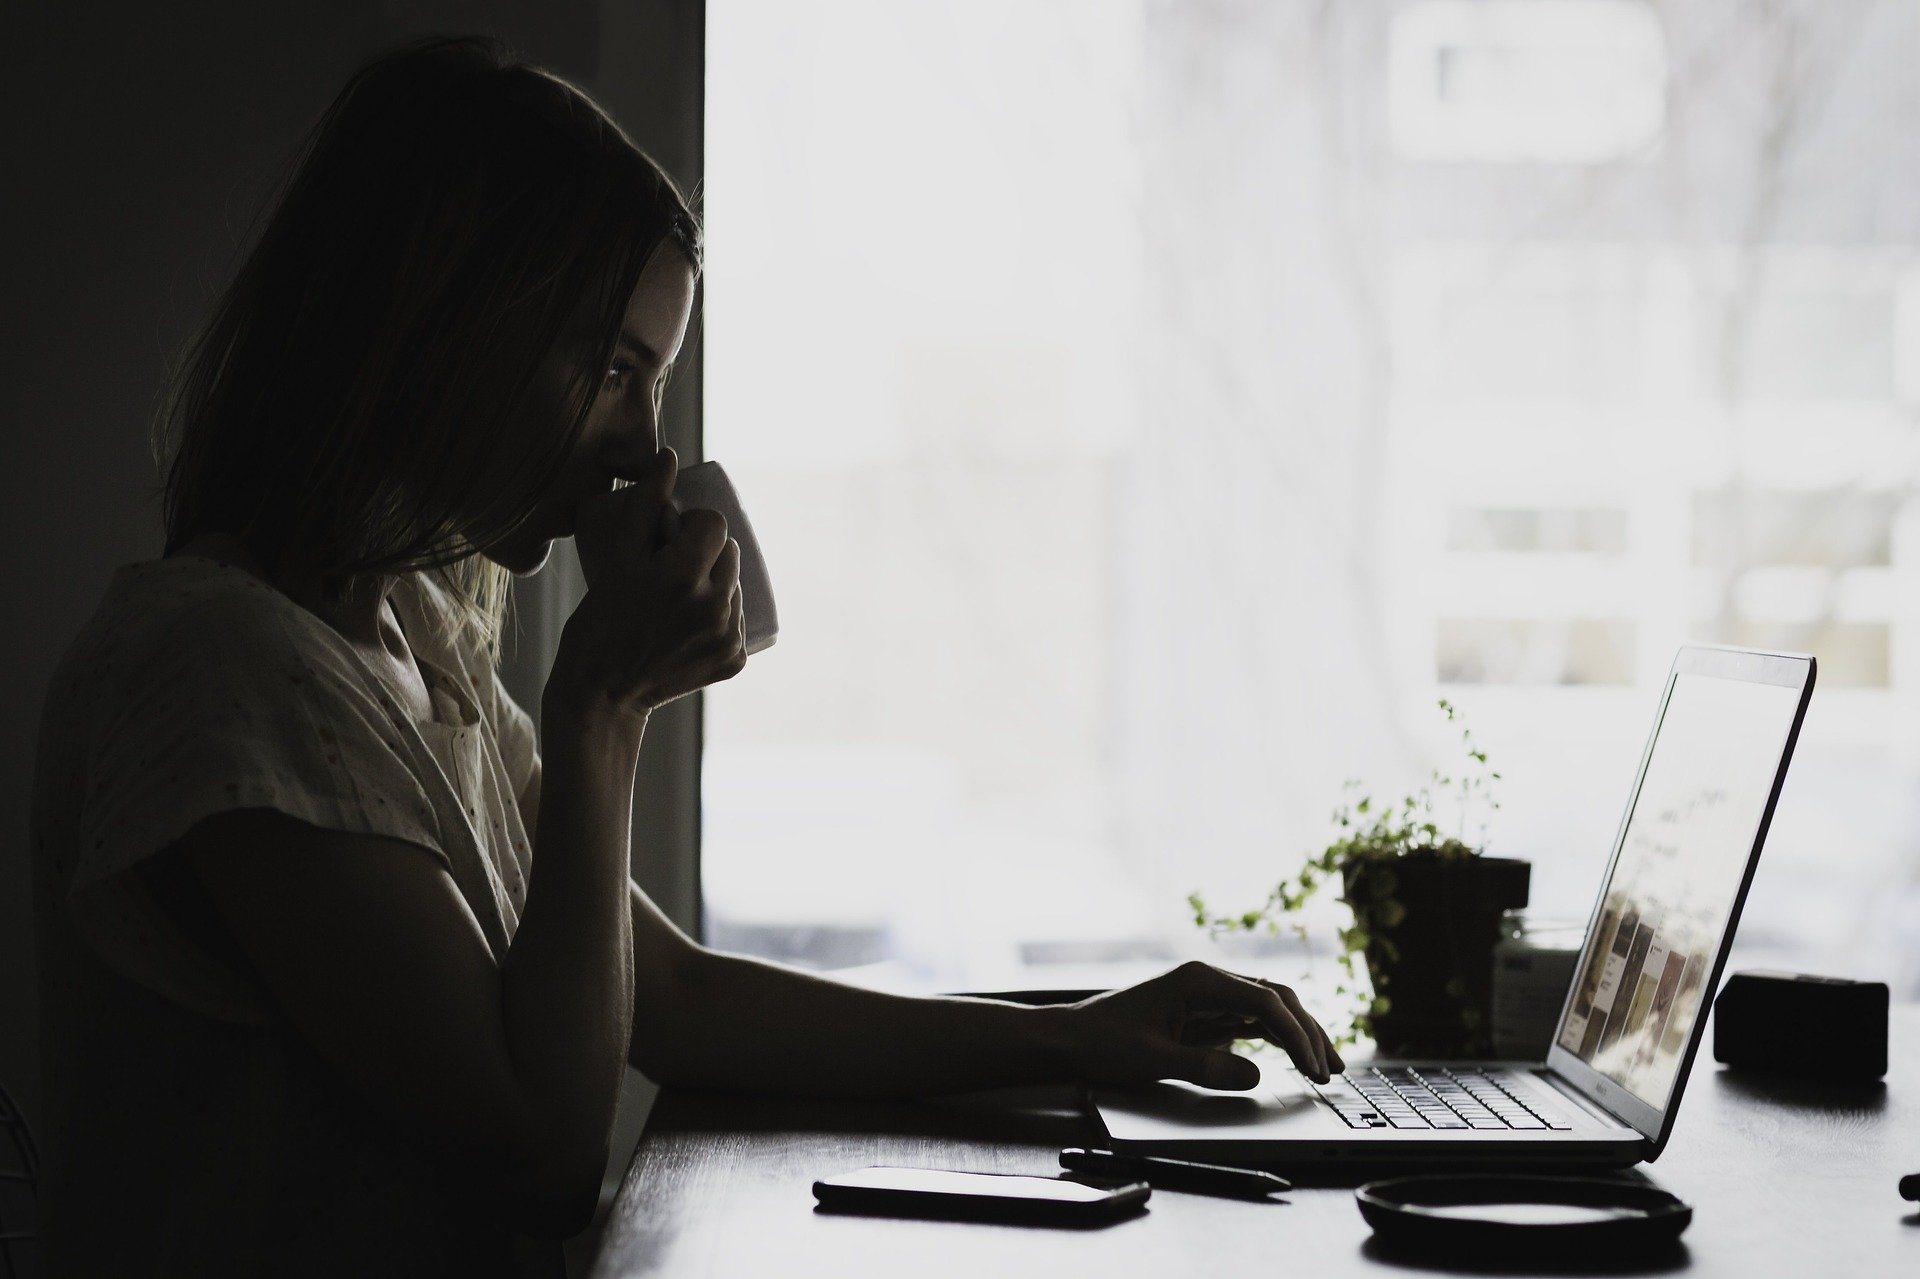 Woman at laptop sipping coffee